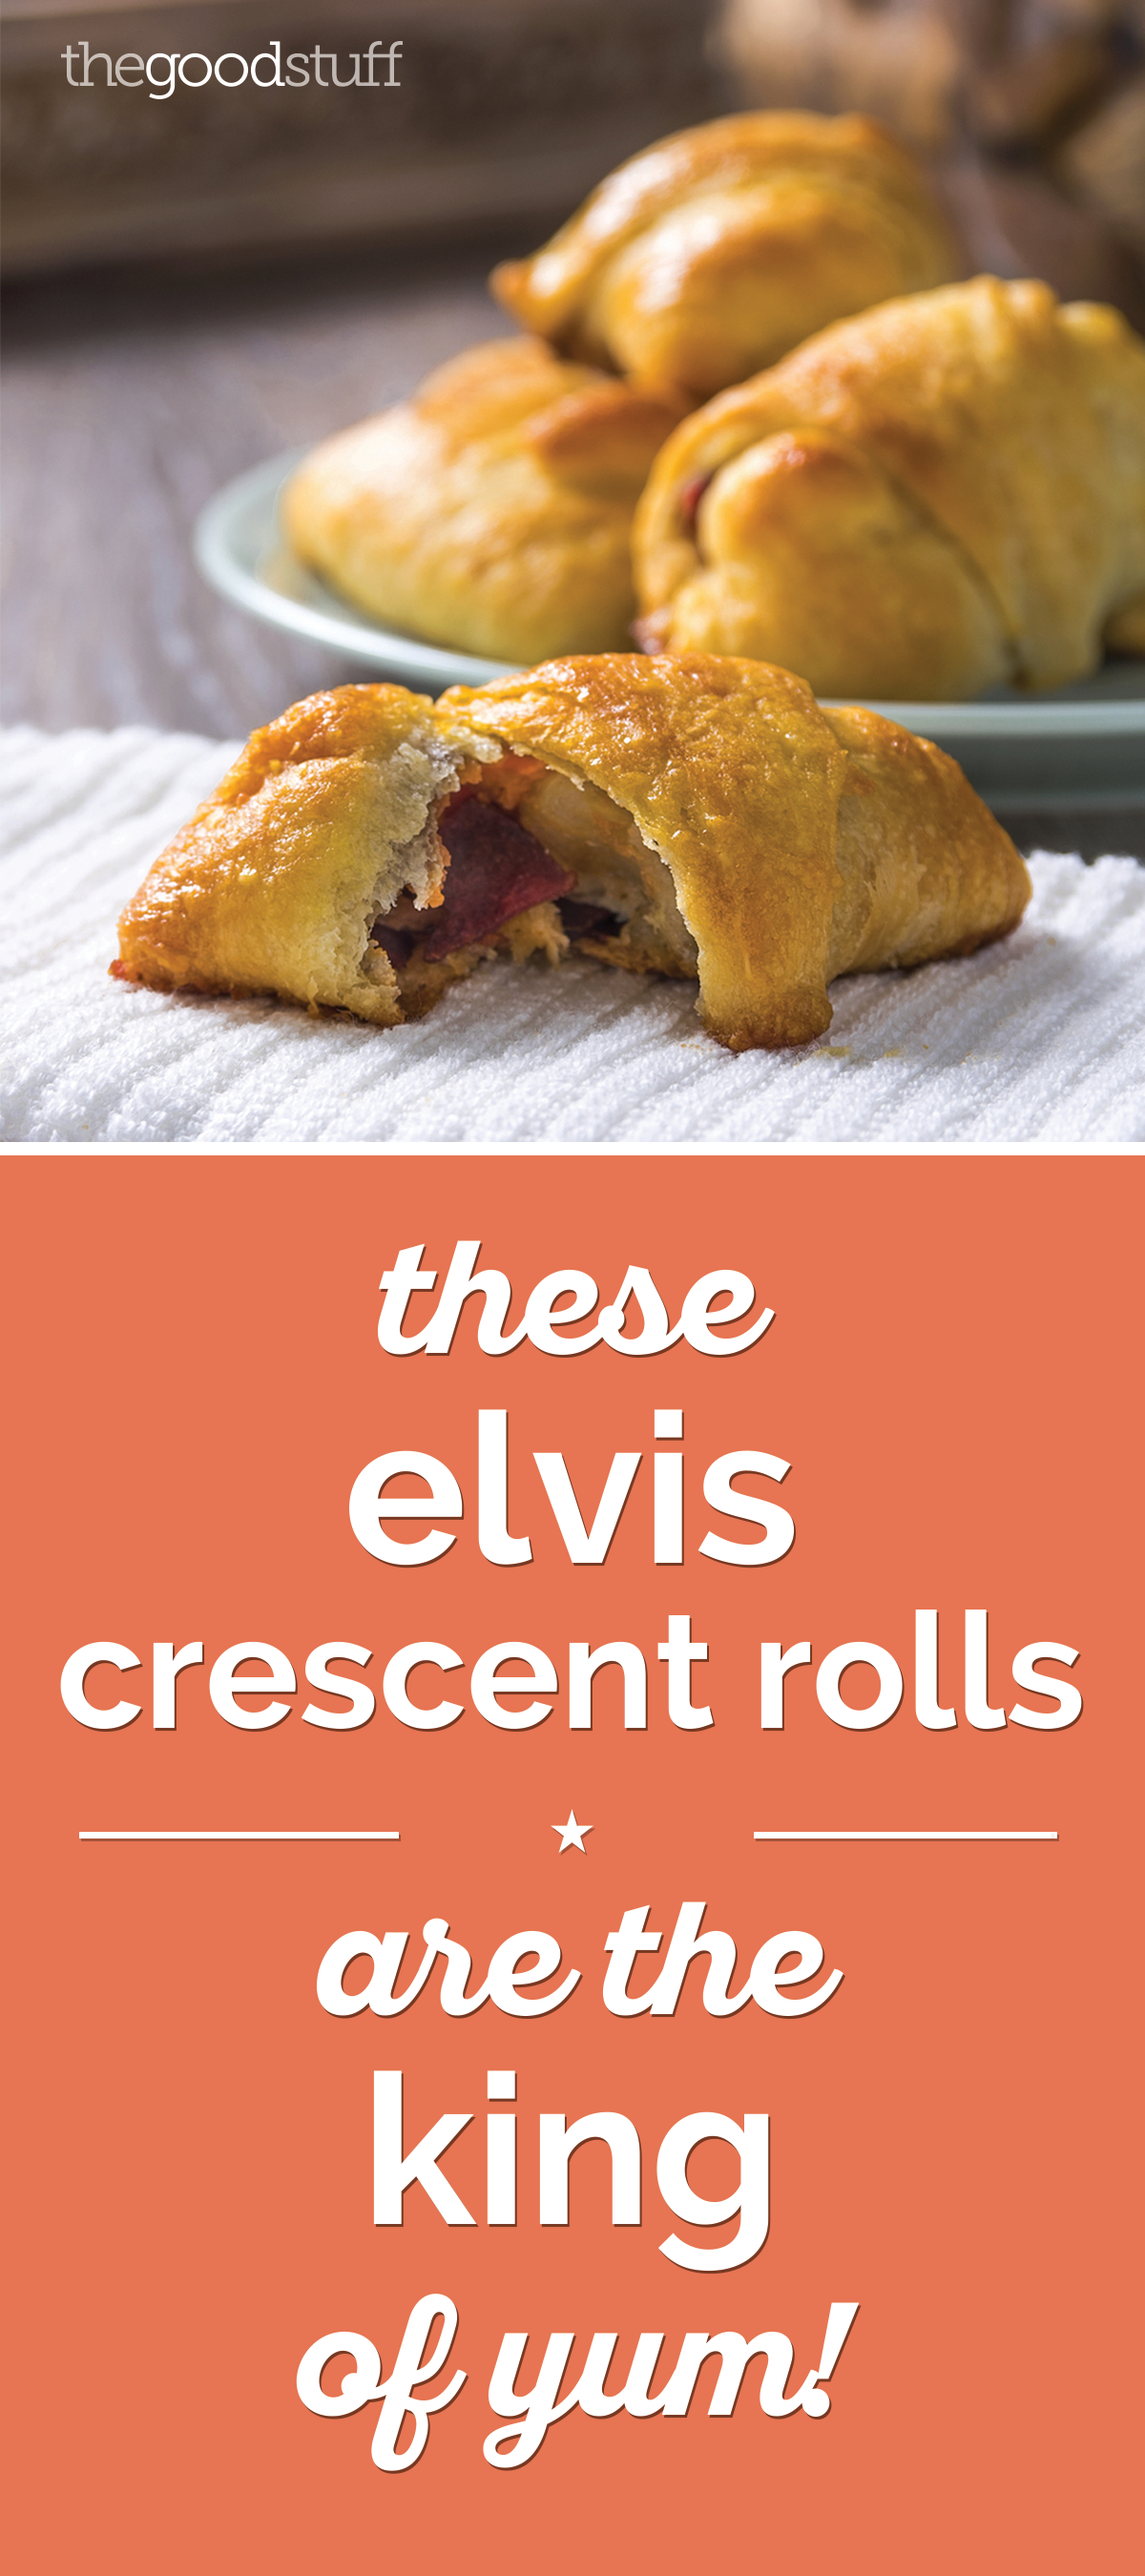 This Elvis Crescent Rolls Recipe Is the King of Yum! | thegoodstuff